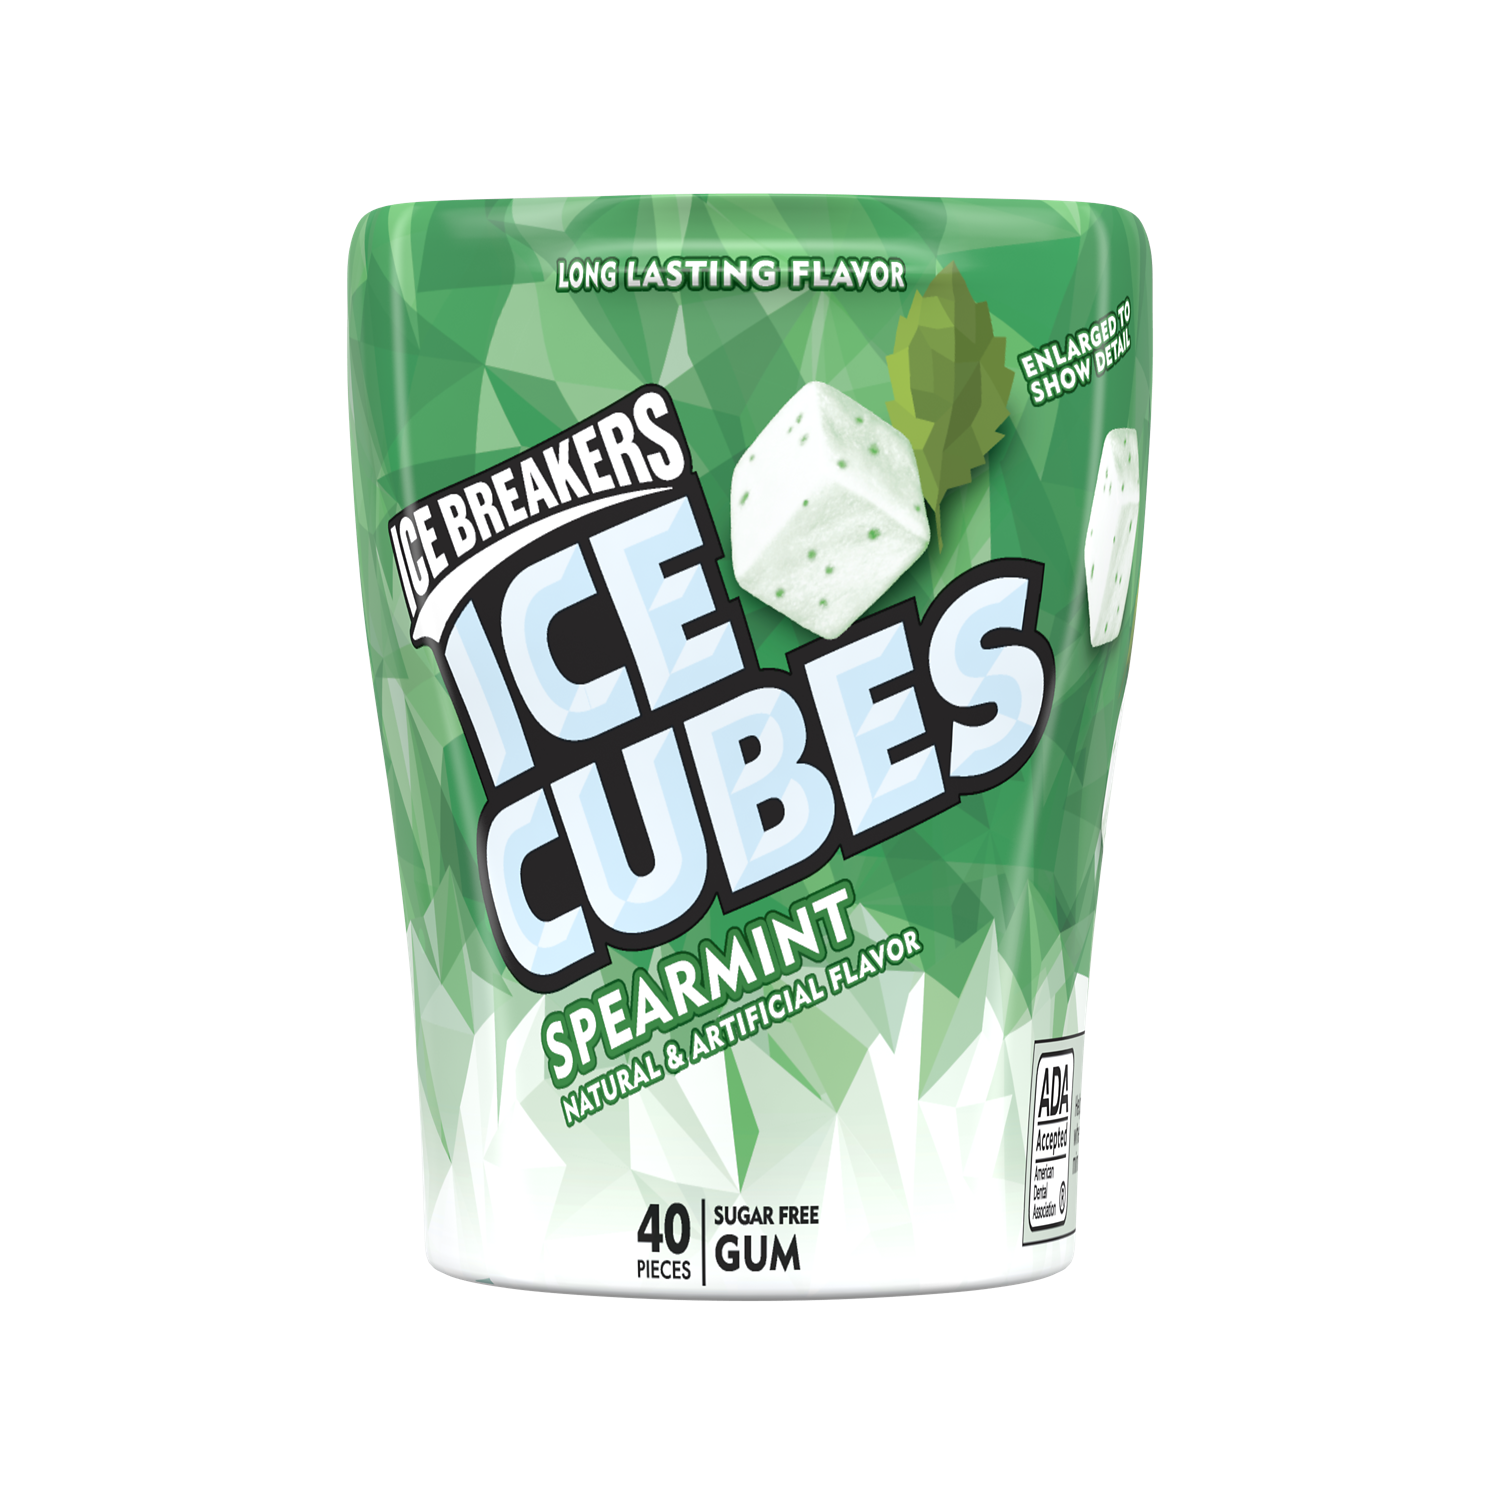 ICE BREAKERS ICE CUBES Spearmint Sugar Free Gum, 3.24 oz bottle, 40 pieces - Front of Package